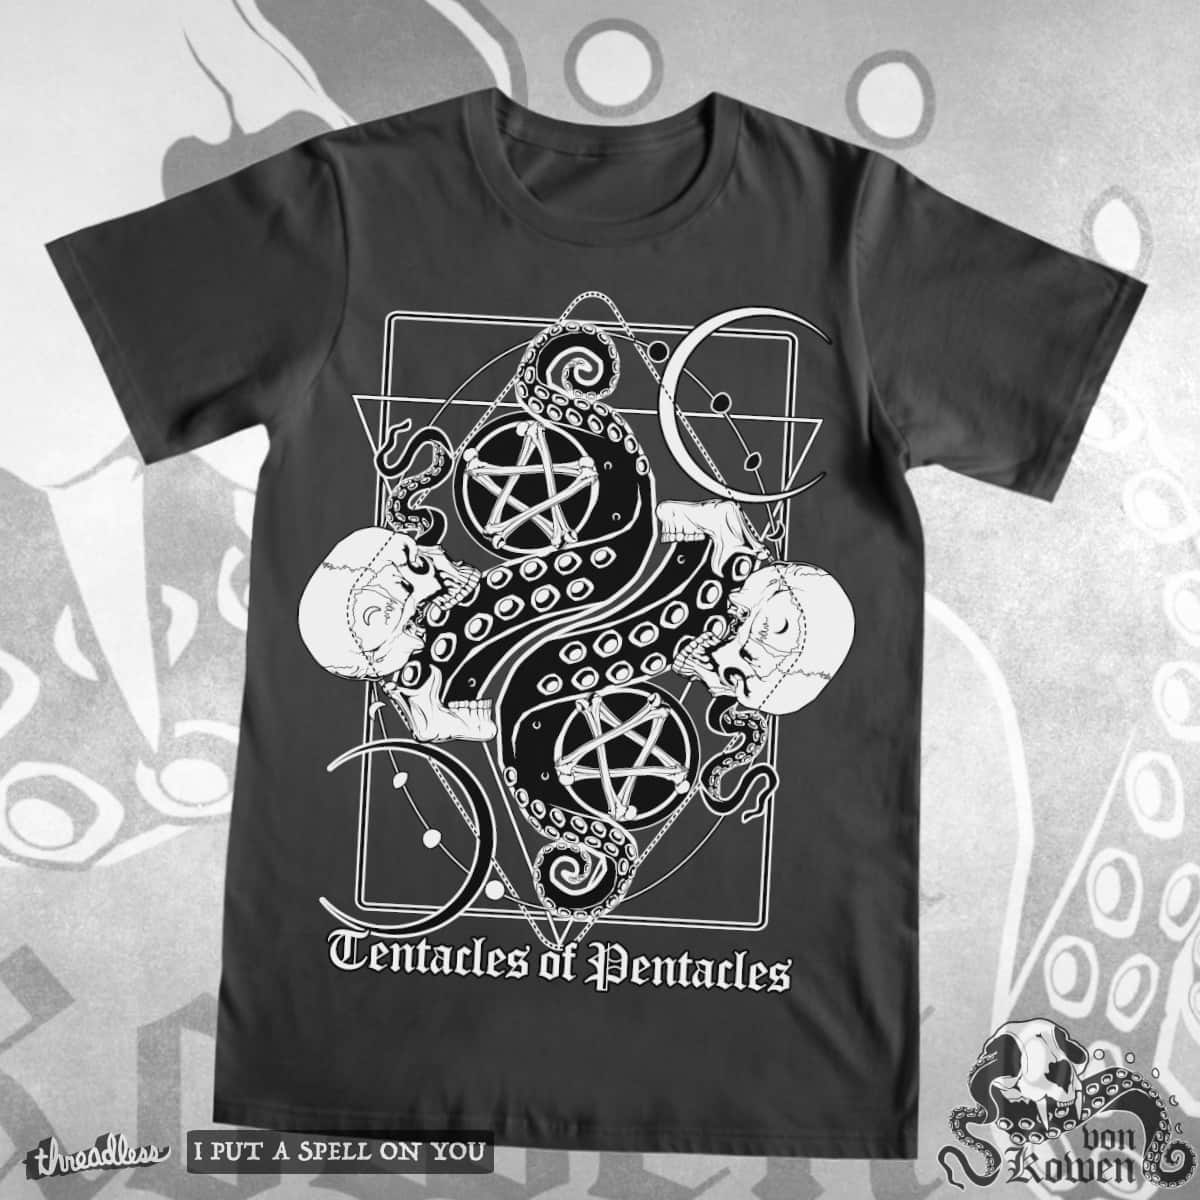 Tentacles of Pentacles by vonKowen on Threadless